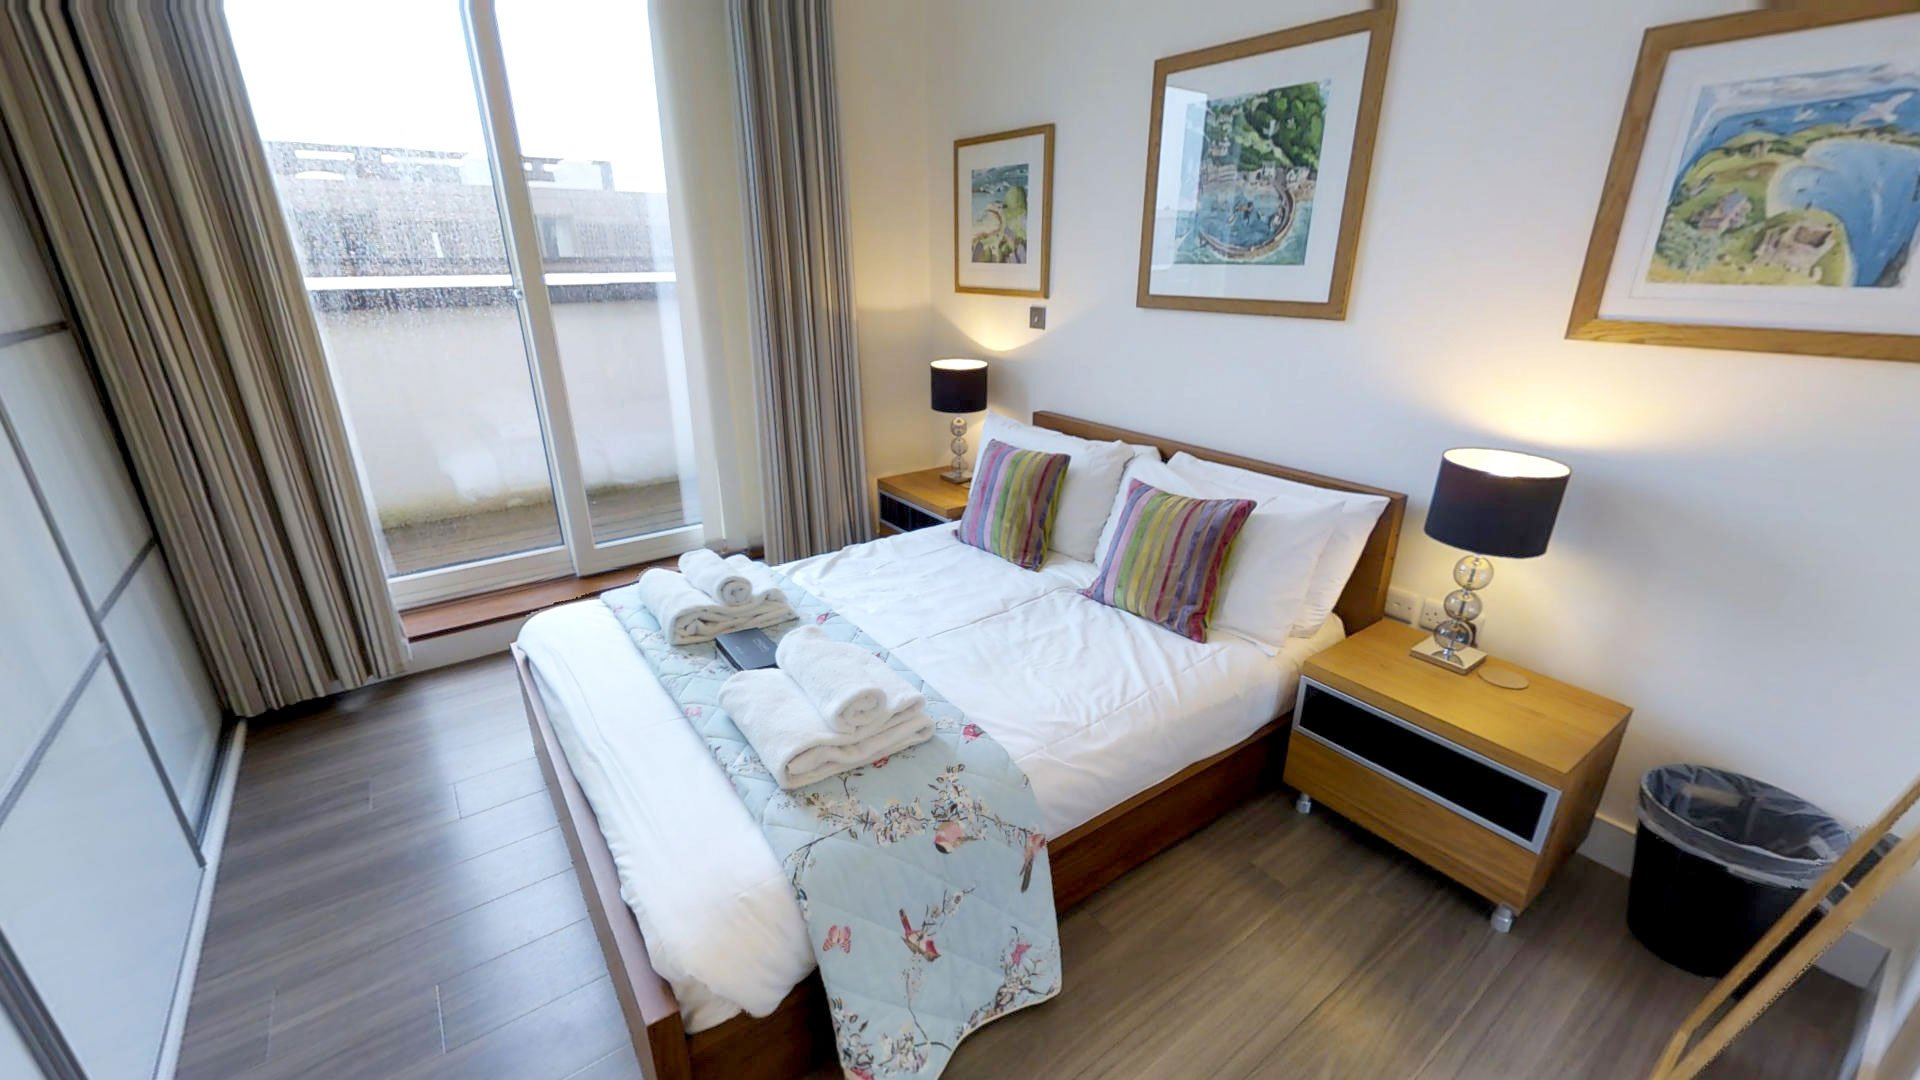 Modern, spacious apartments in Cambridge ideal for corporate ventures, city breaks and for those travelling the country.